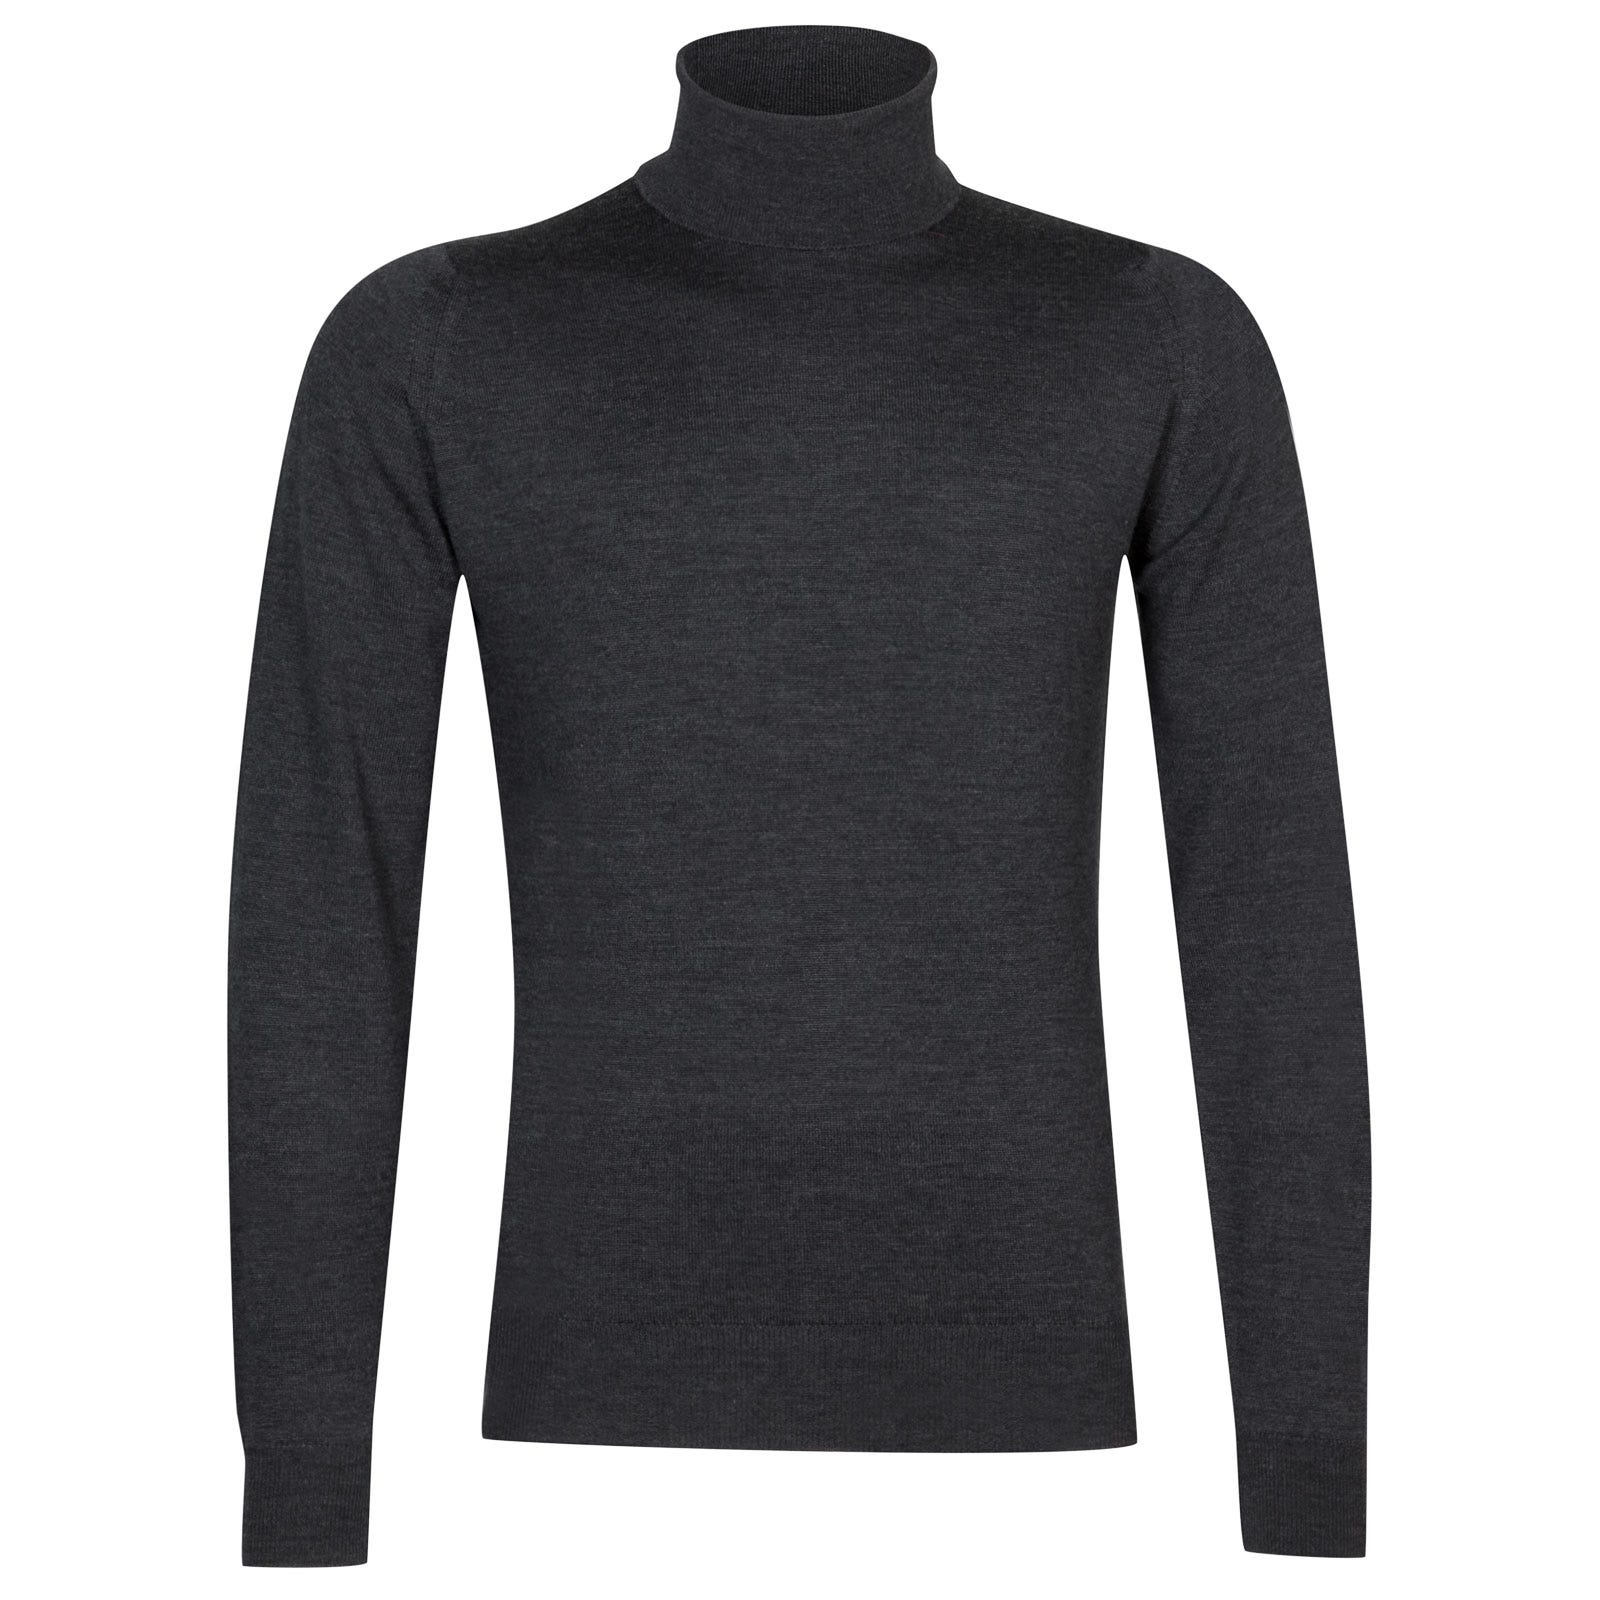 John Smedley Connell Merino Wool Pullover in Charcoal-M